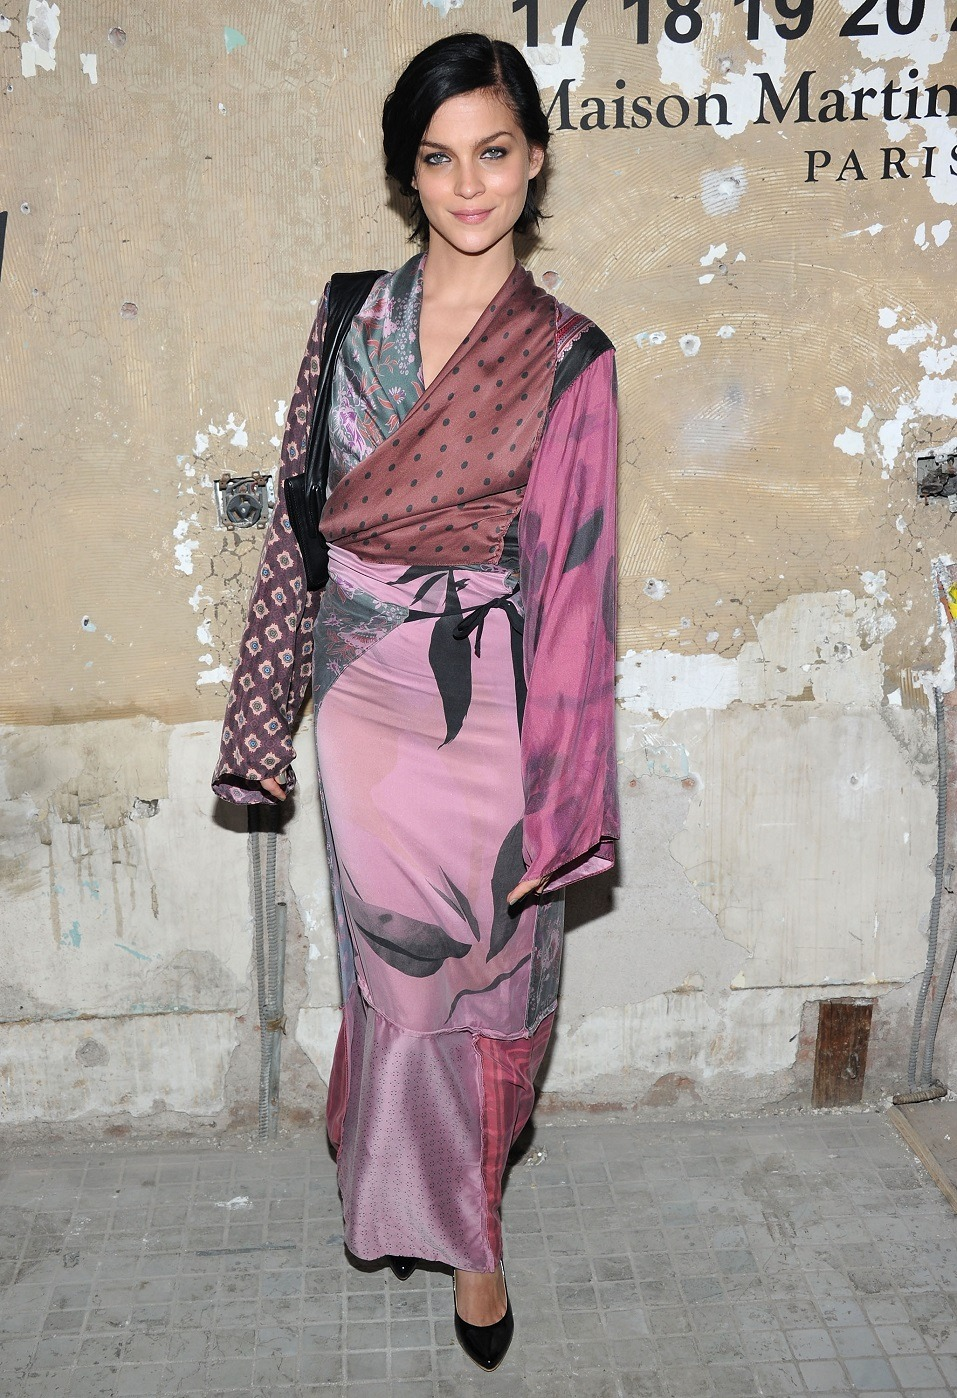 Leigh Lezark attends the Maison Martin Margiela